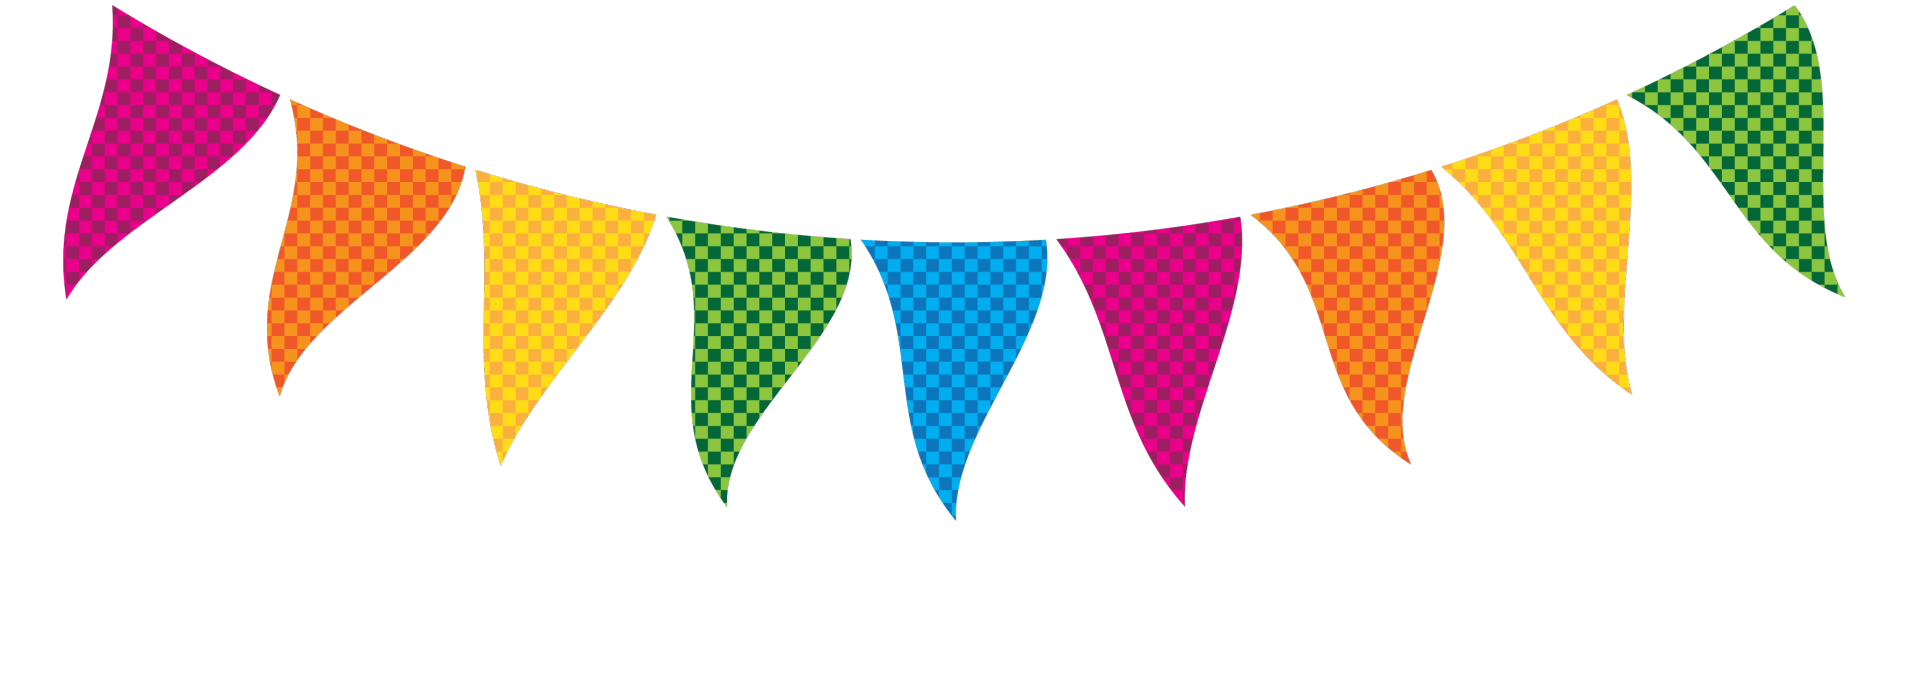 1920x685 Party Banner Cliparts 242962